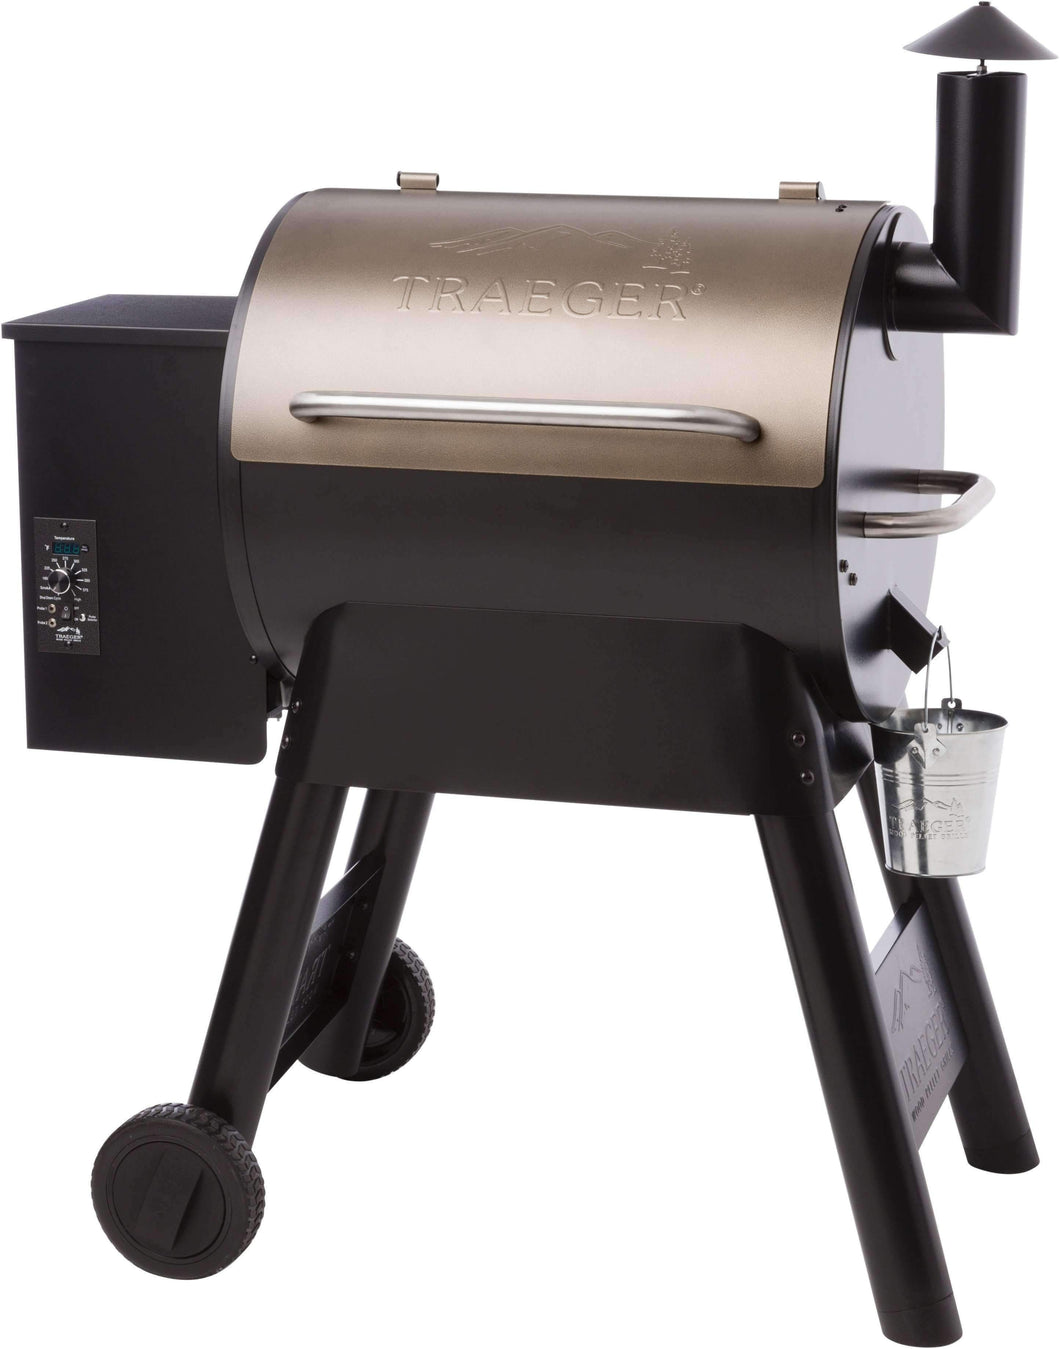 Traeger Pro Series 22 Grill - Bronze